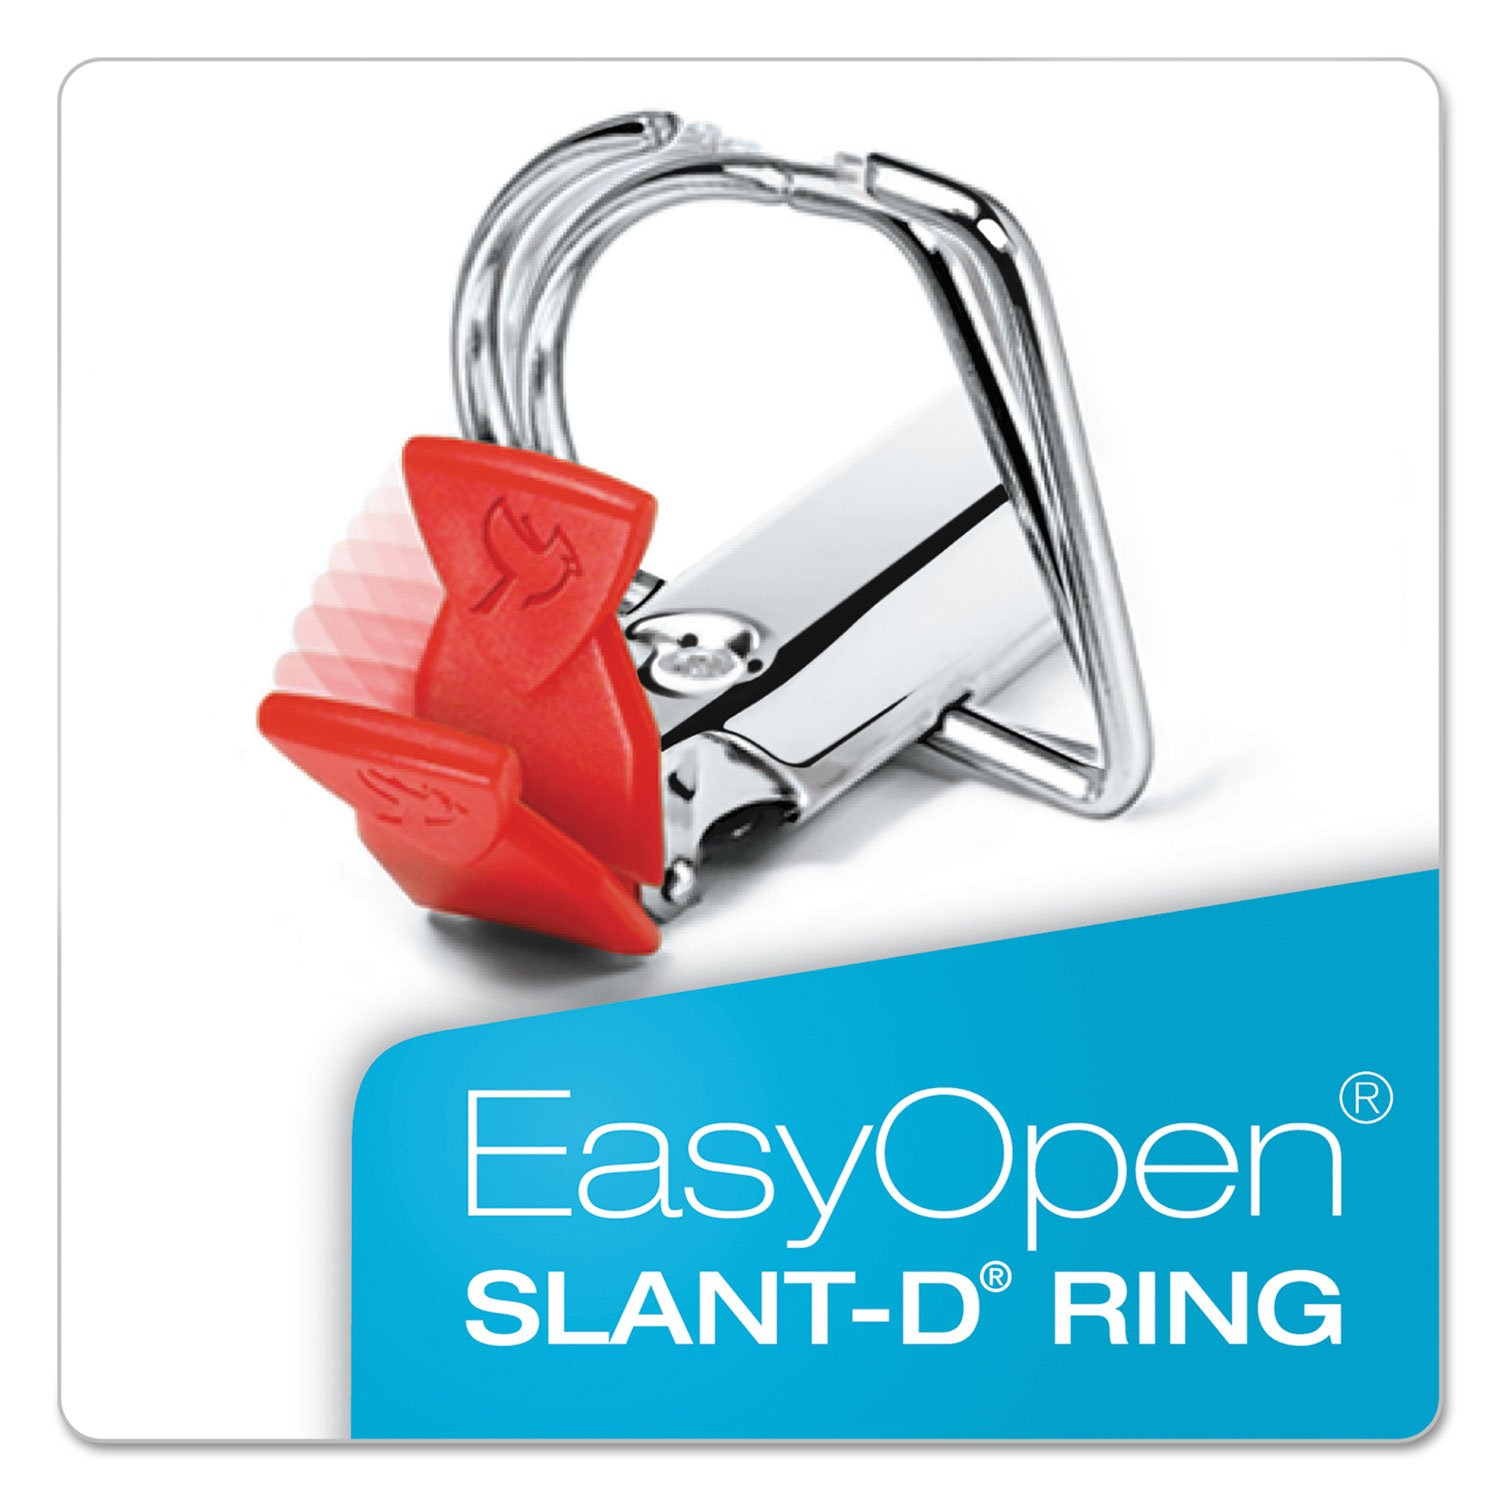 CRD43150 - FreeStand Easy Open Locking Slant-D Ring Binder by Adams (Image #3)